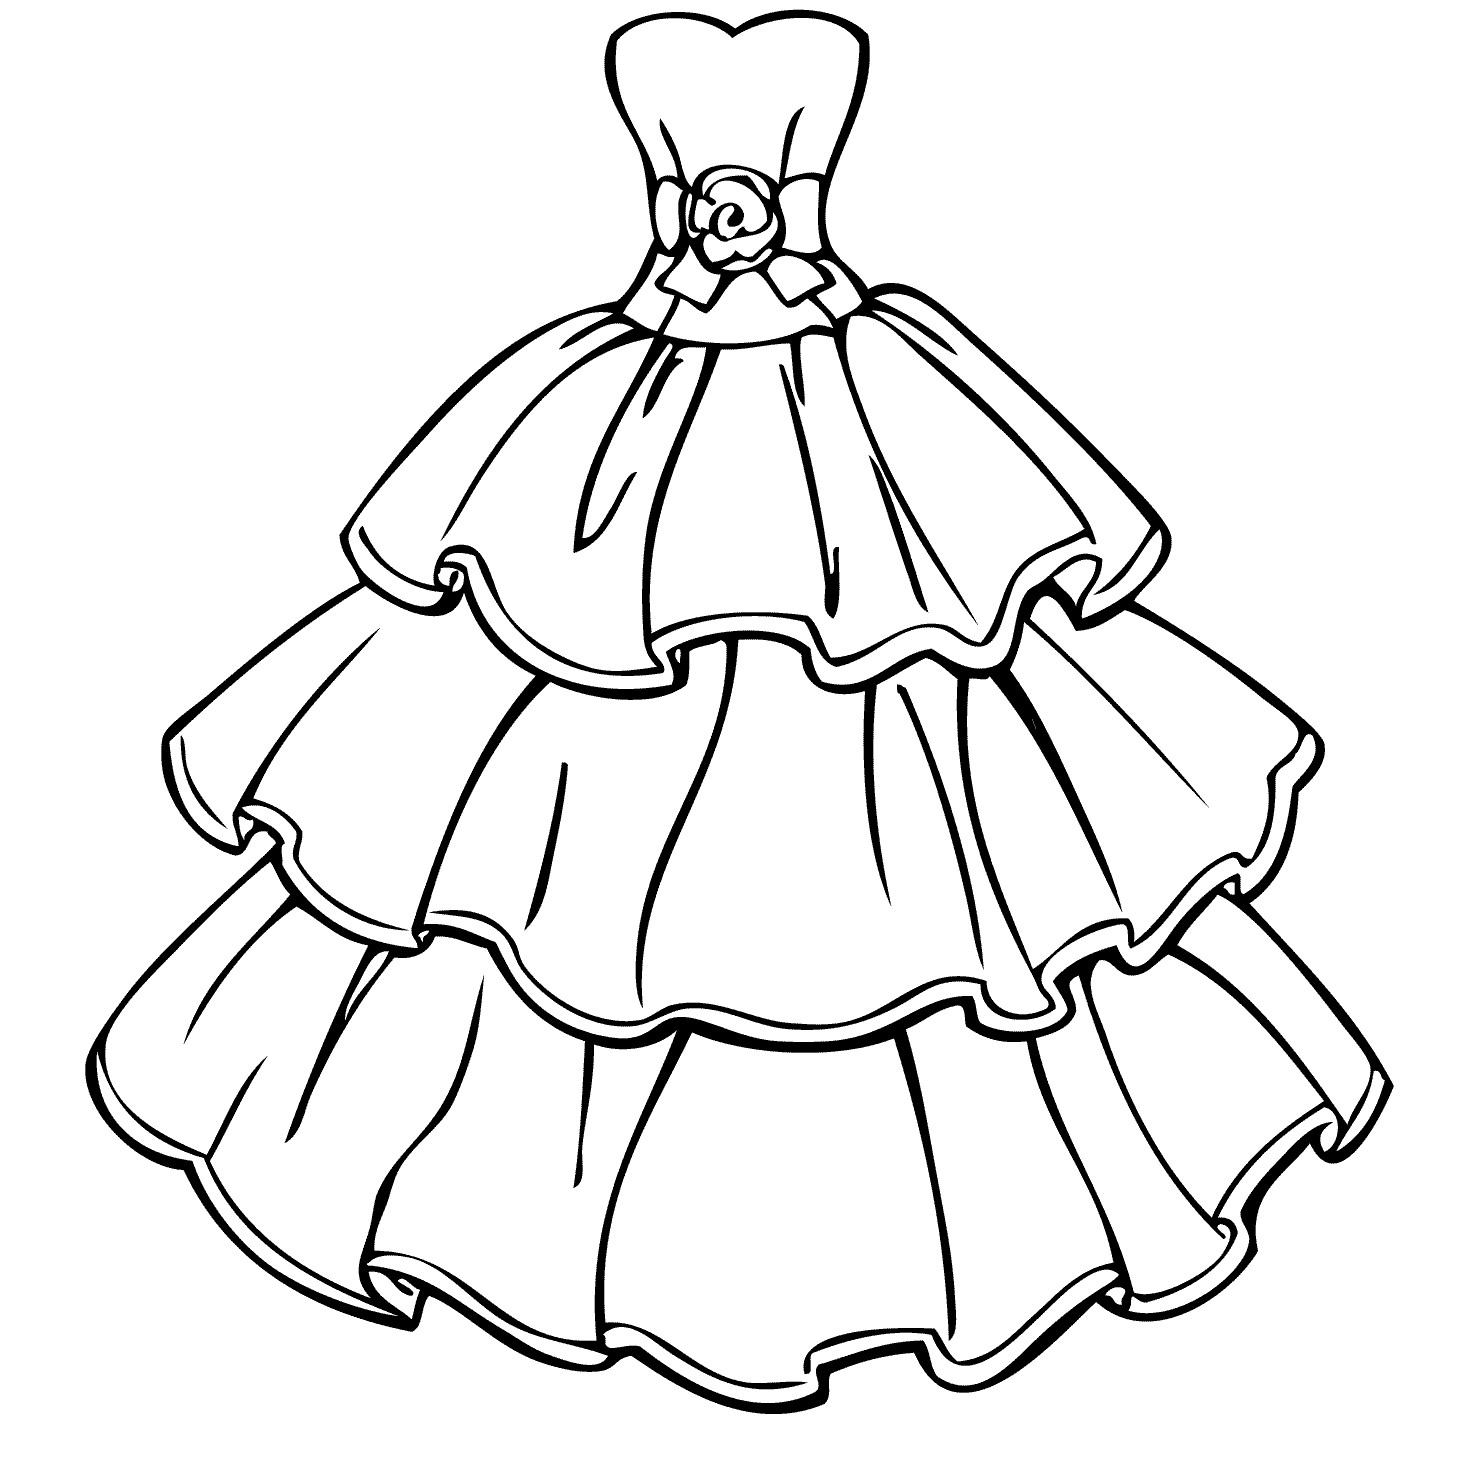 Coloring Pages For Girls: Dress Coloring Pages To Download And Print For Free